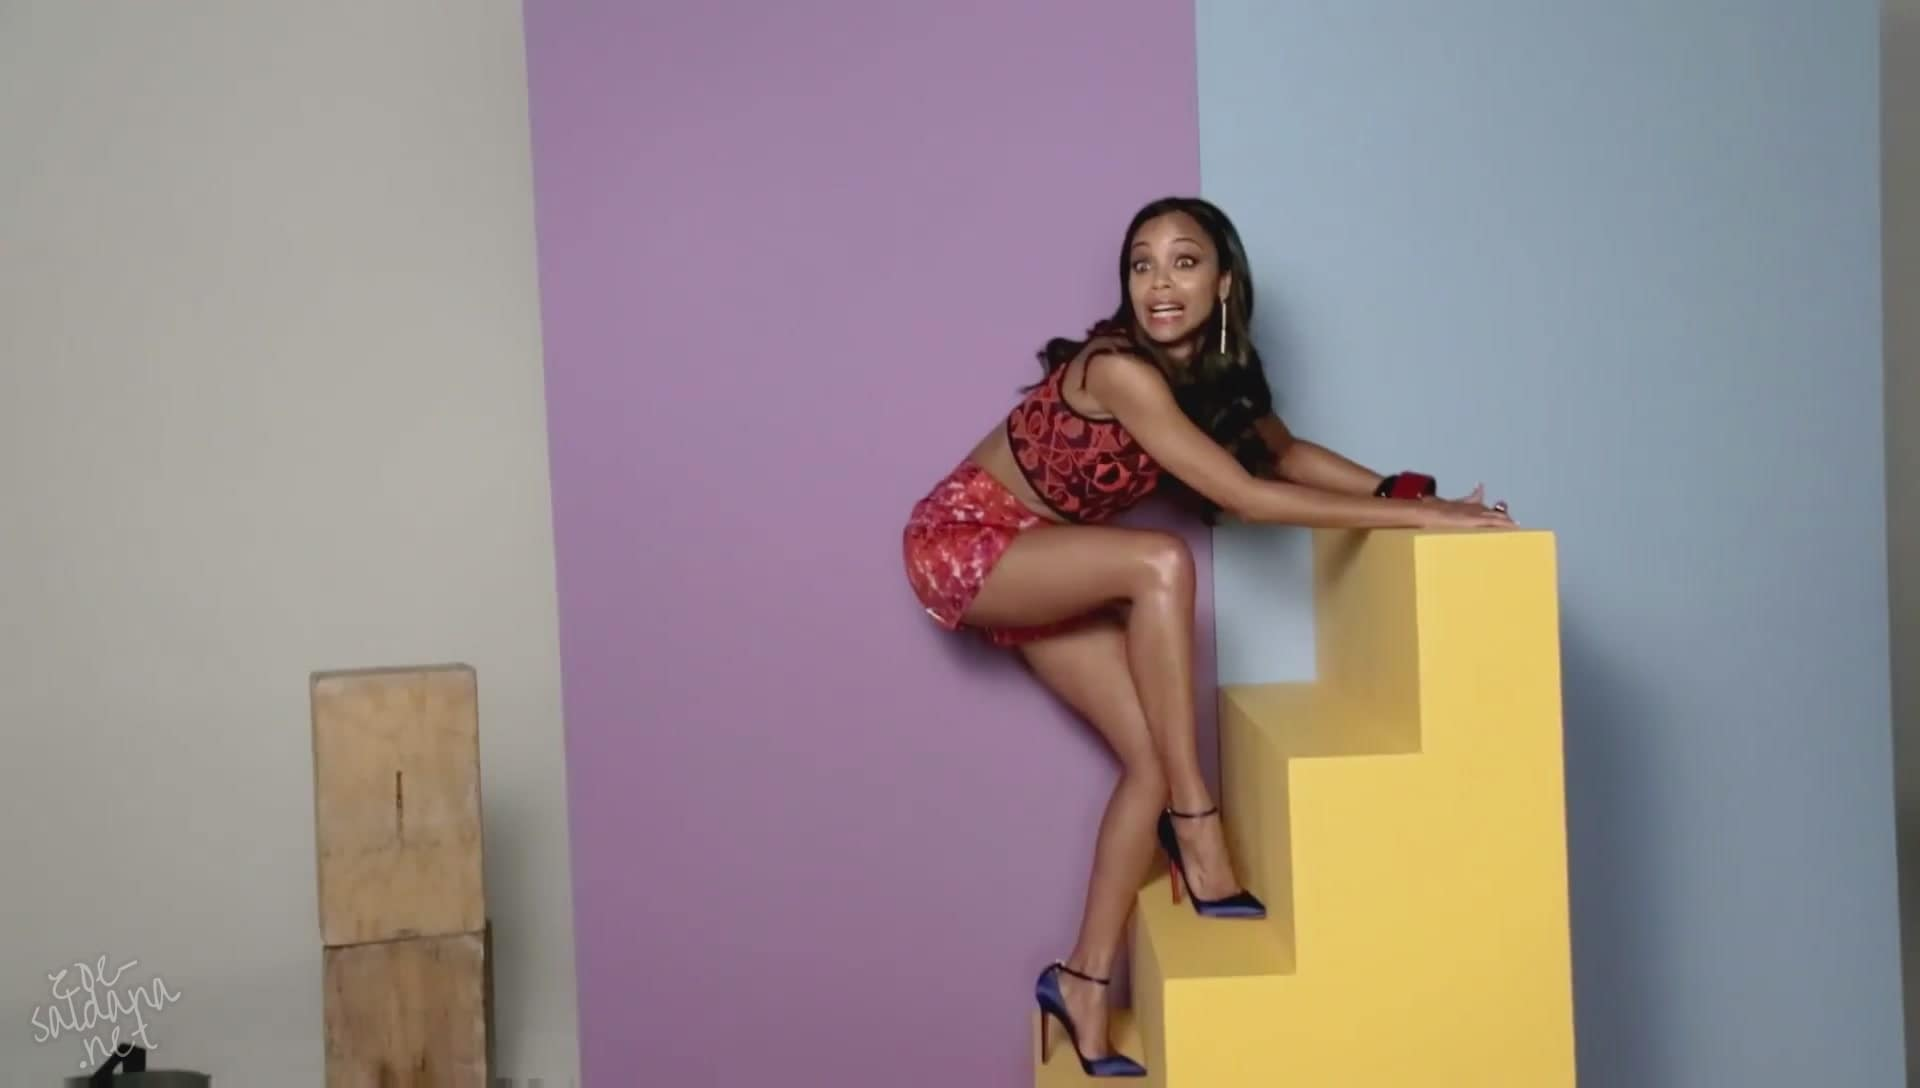 Zoe-Saldana-Sexy Feet in high heels pic